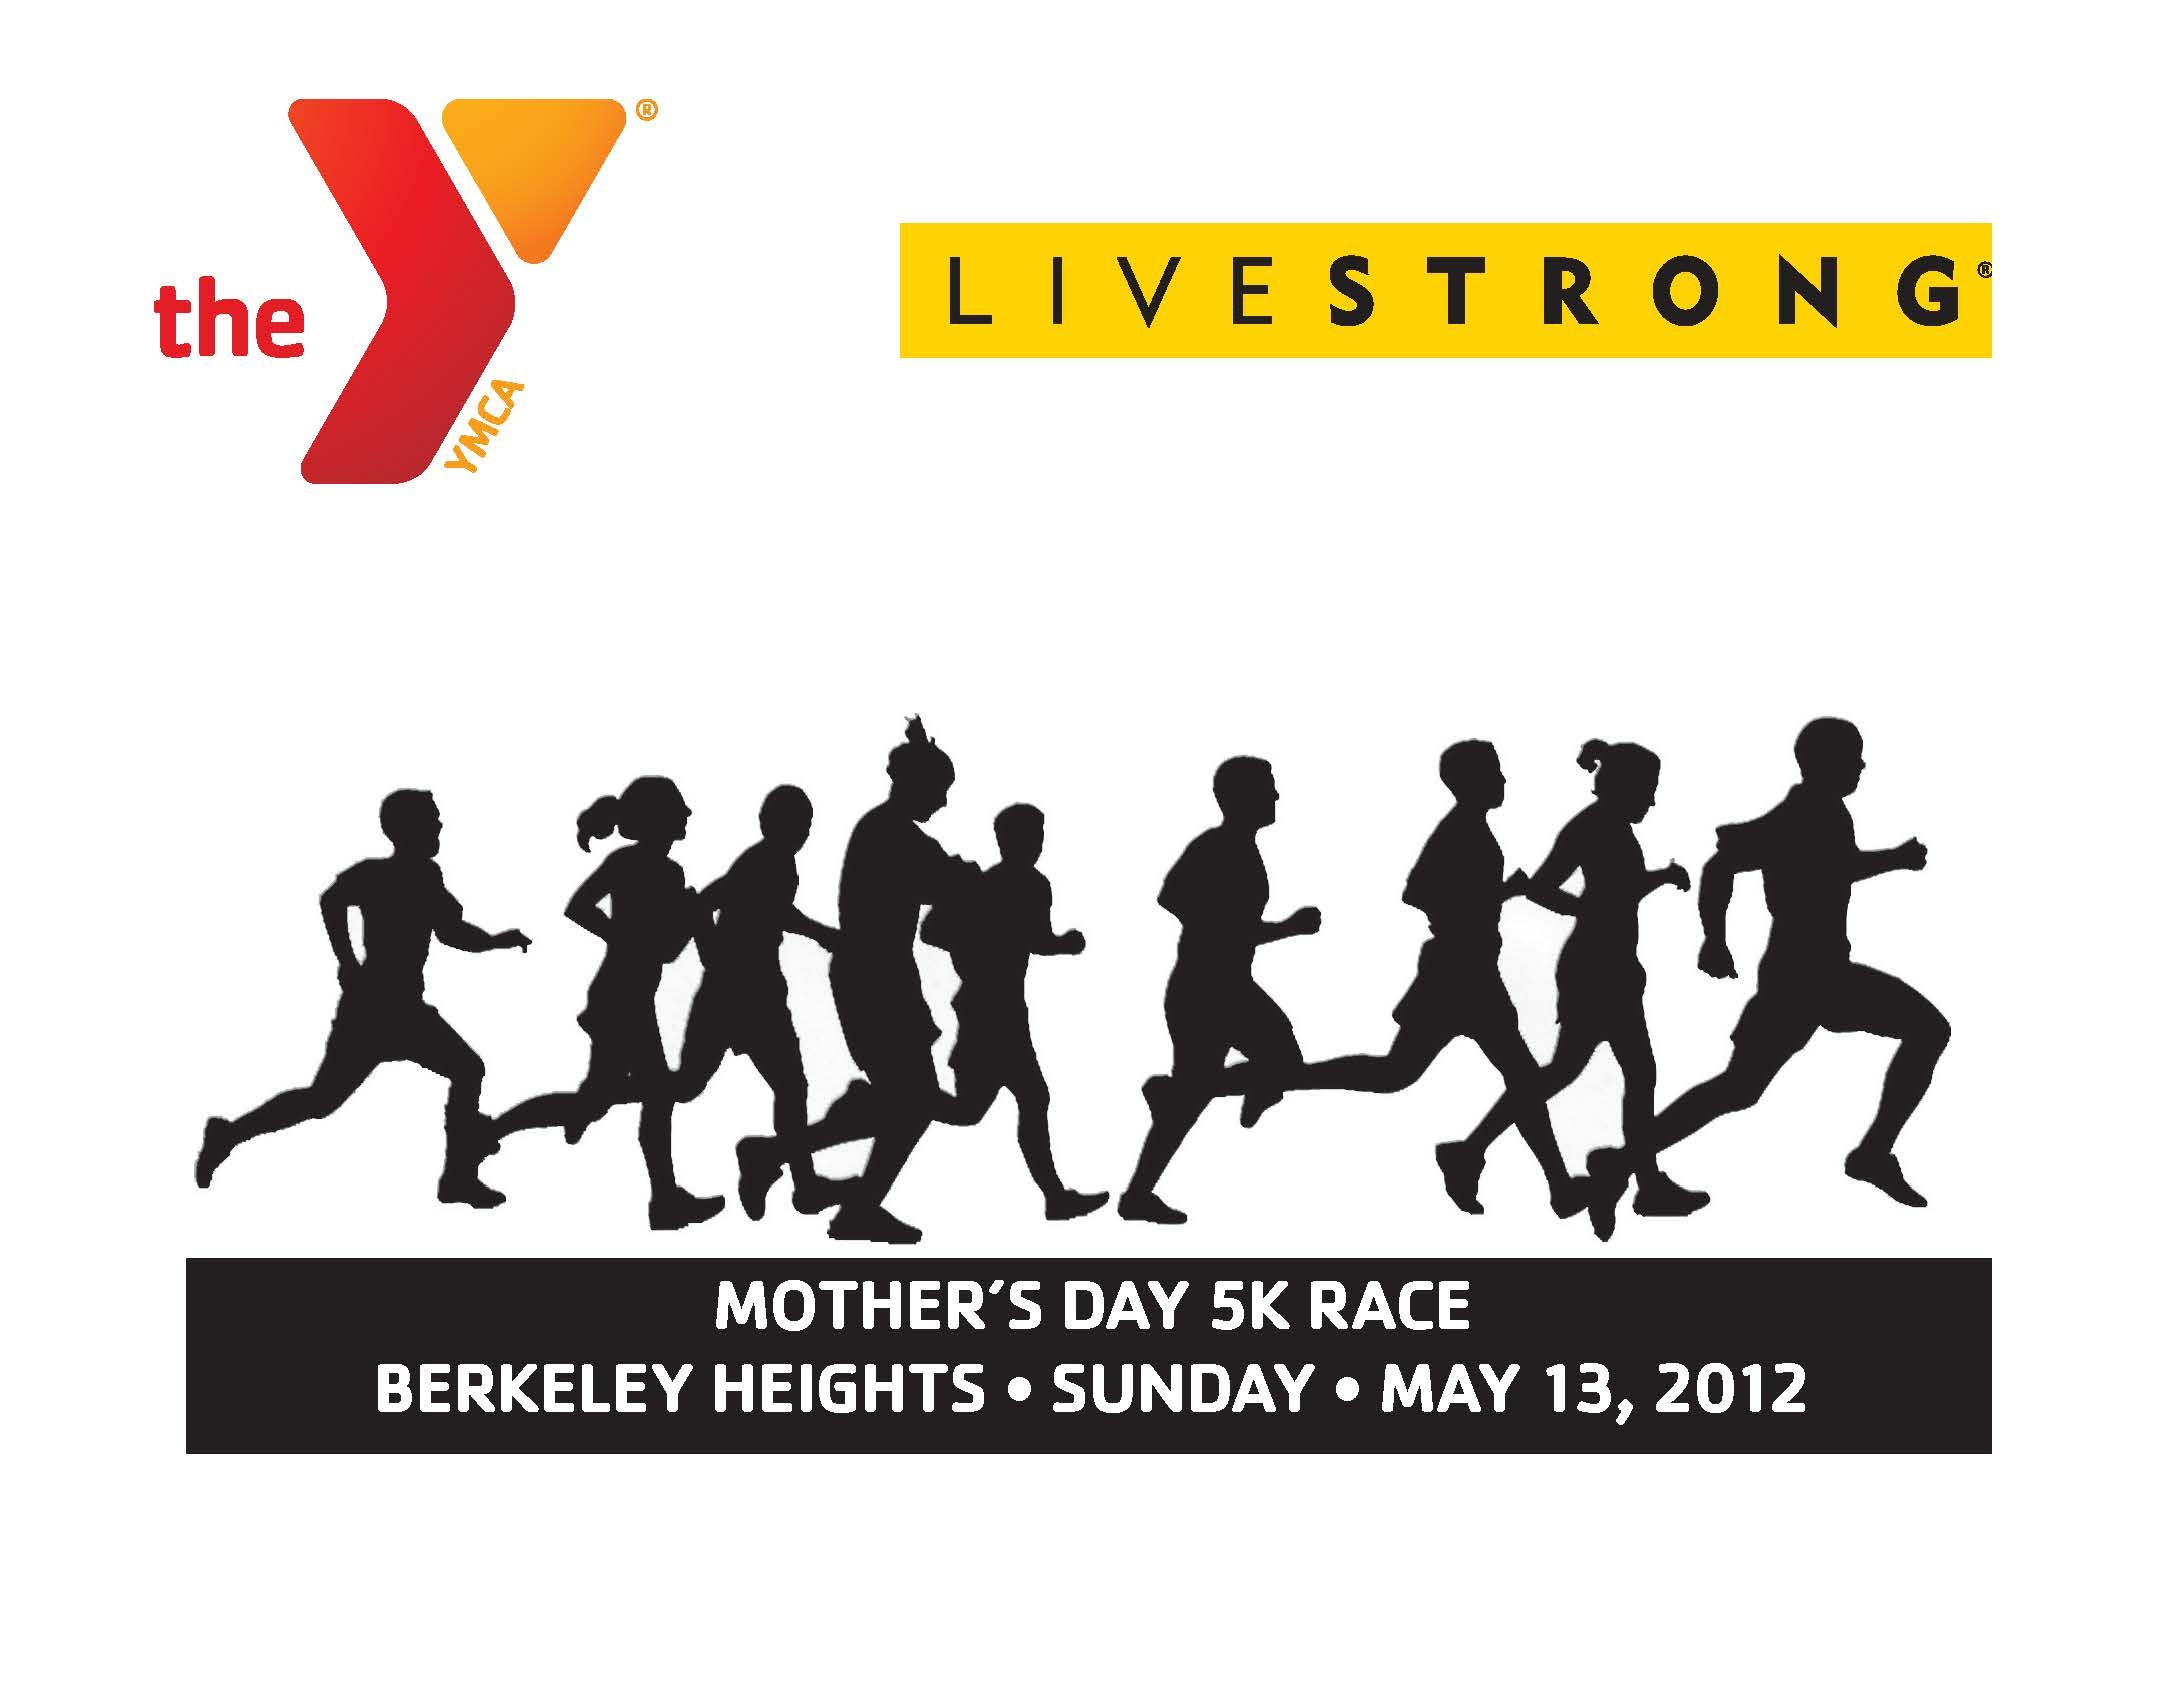 07b0d31e080d3c494b57_mother_day_5k_logo_with_color_livestrong_train.jpg